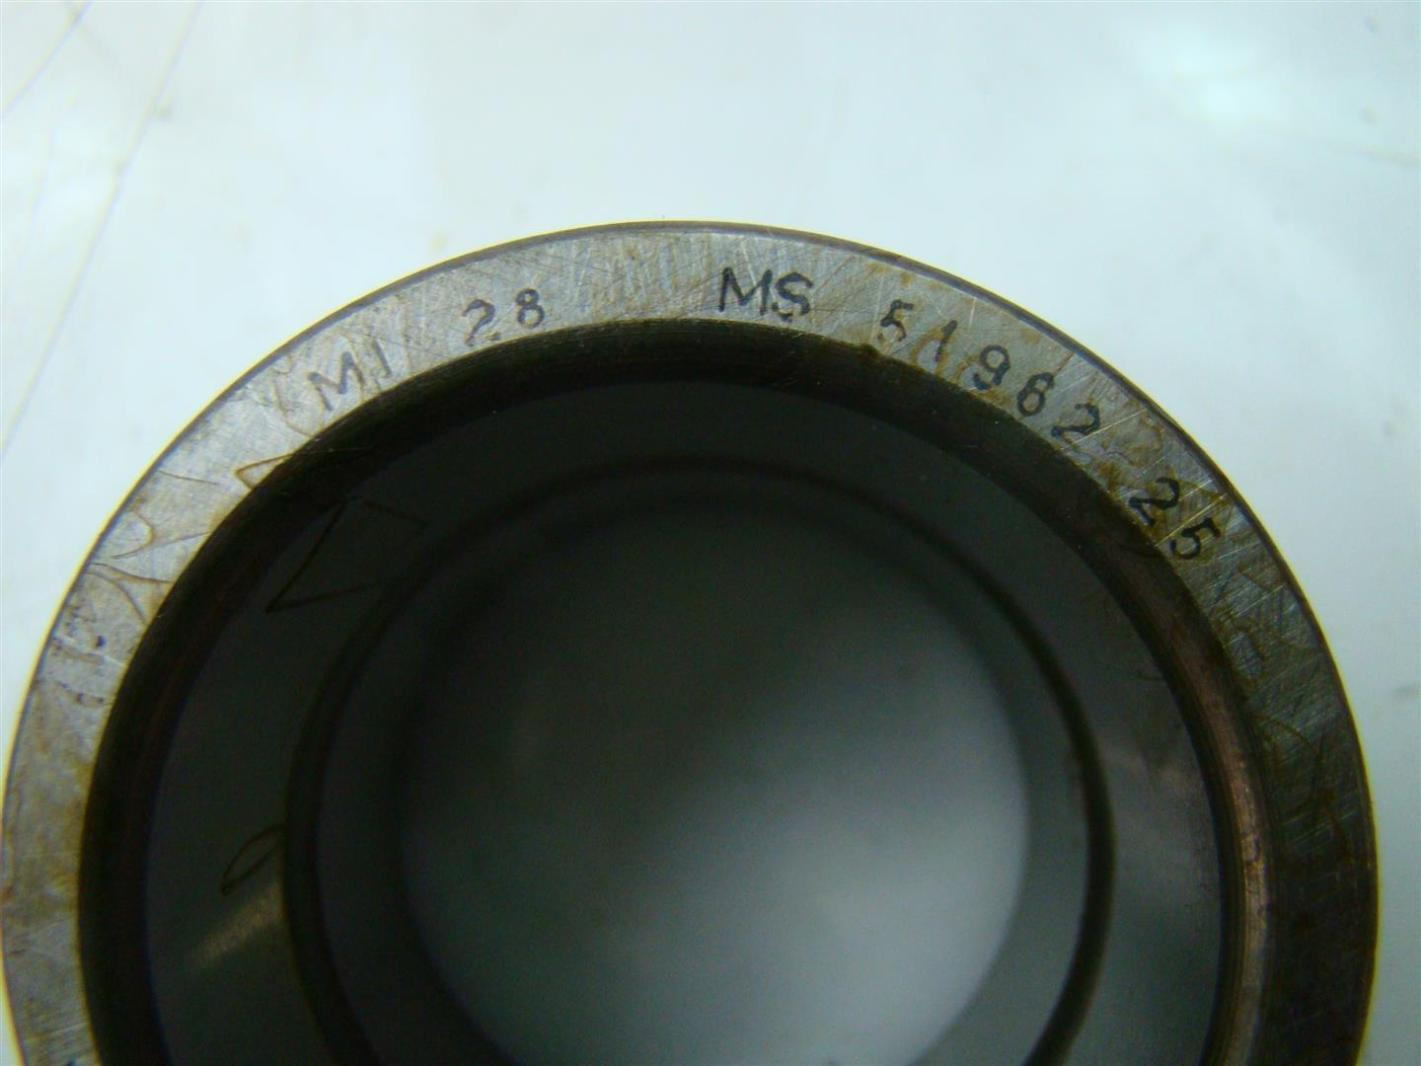 McGill Inner Race Precision Bearings MI28 MS51962 25